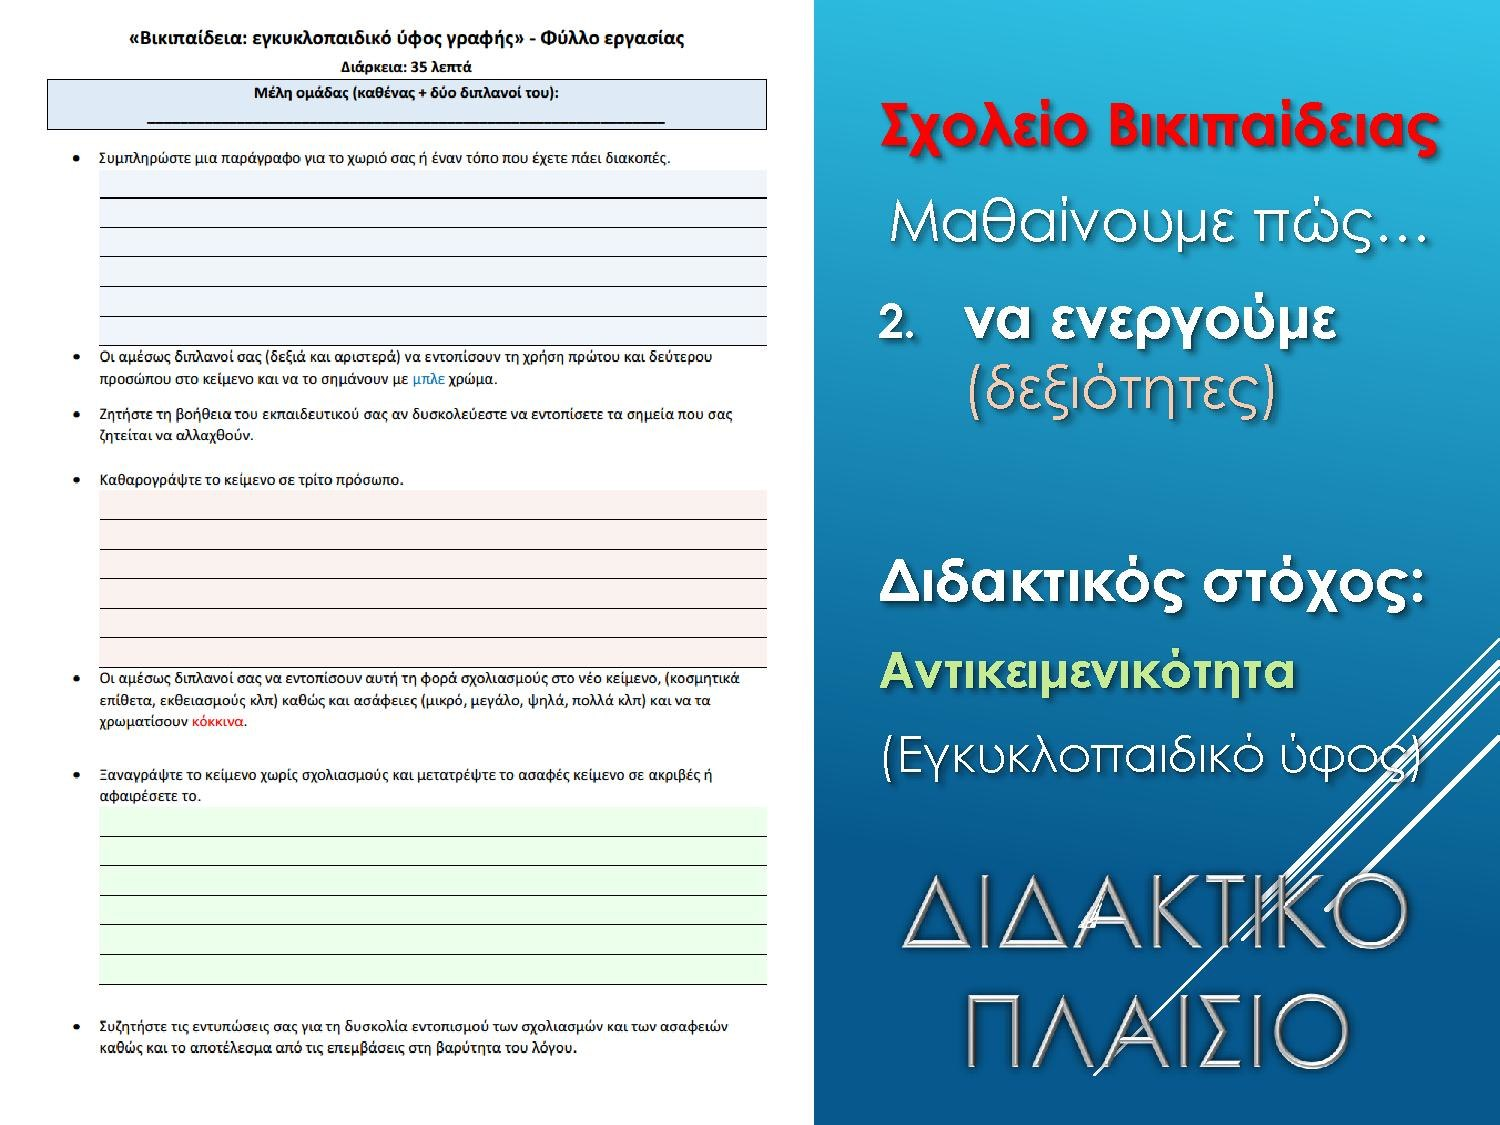 58c55f02ca Αρχείο Wikipedia School of Athens - Fosscomm 2015 presentation.pdf ...